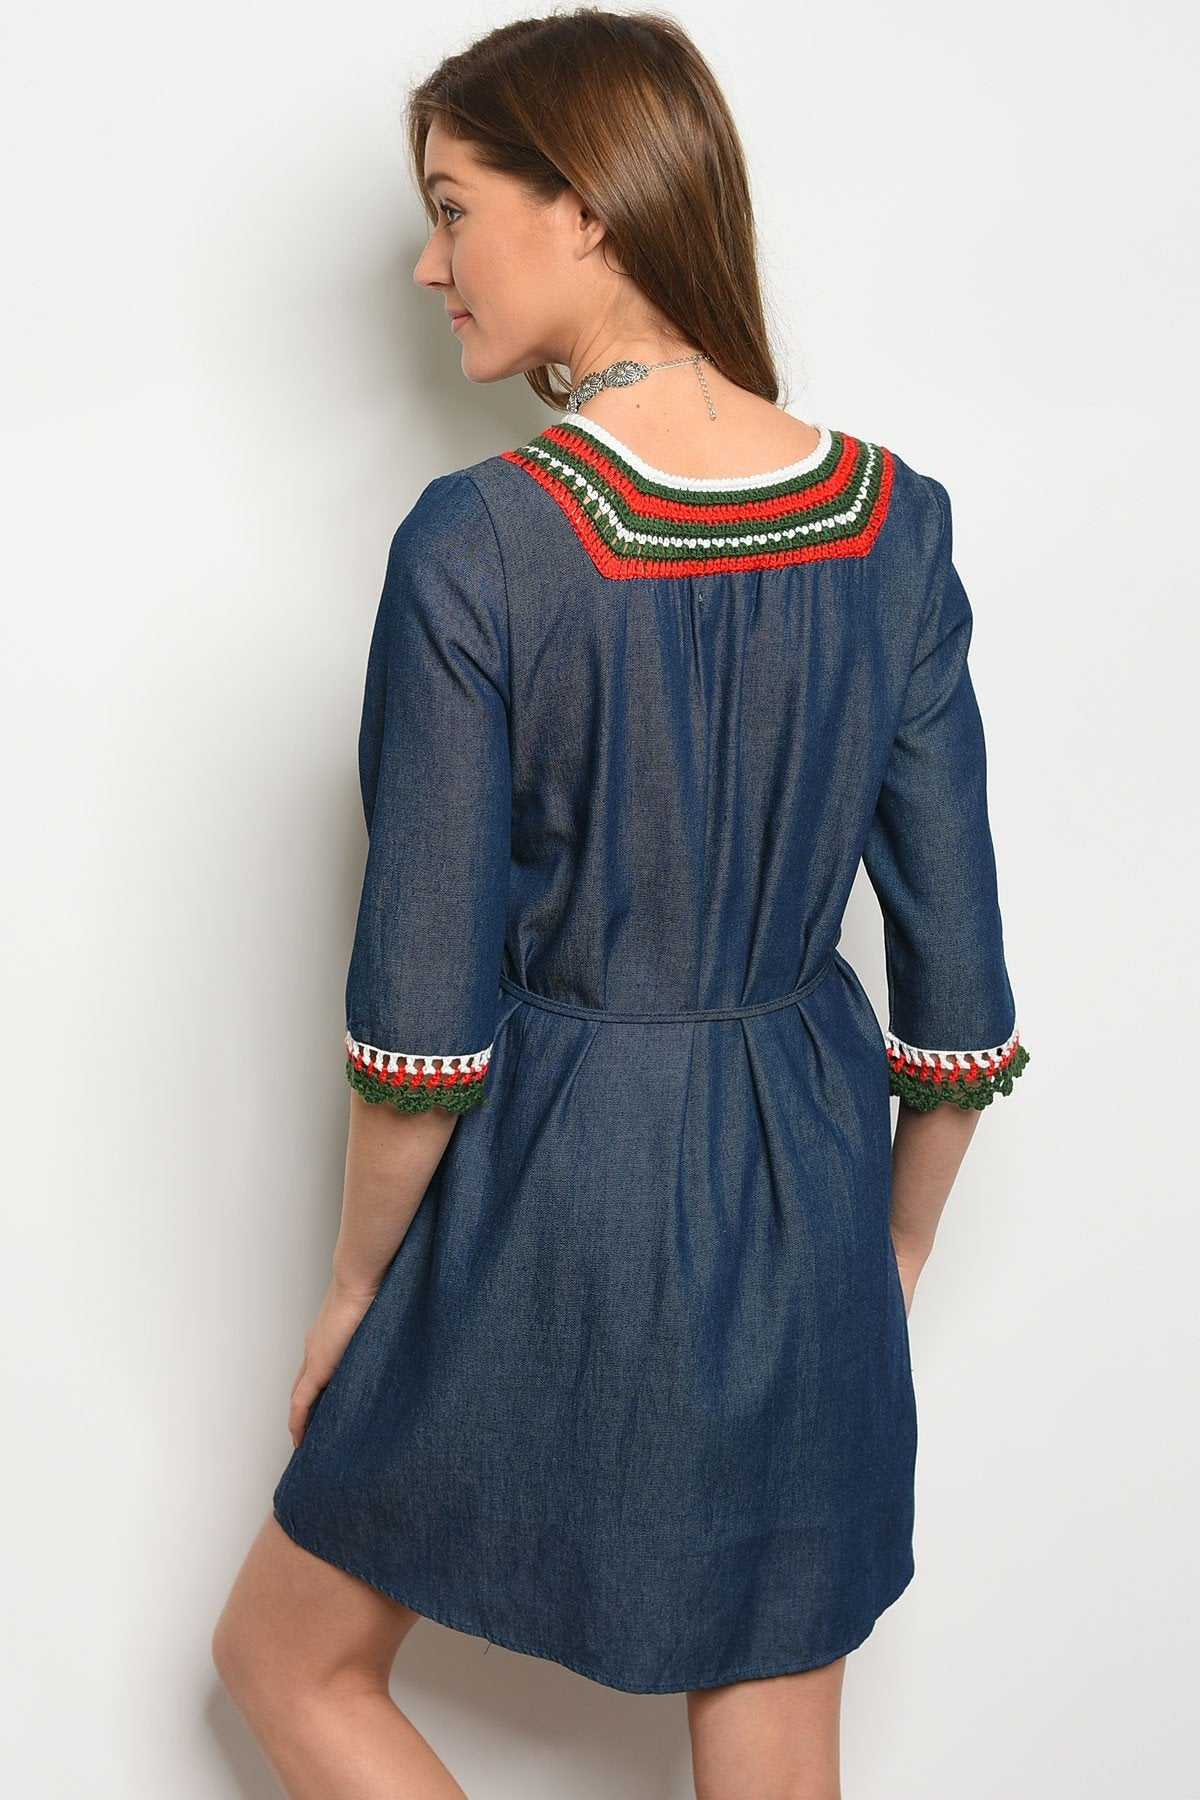 Womens Embroidery Dress - Manifest Best Boutique